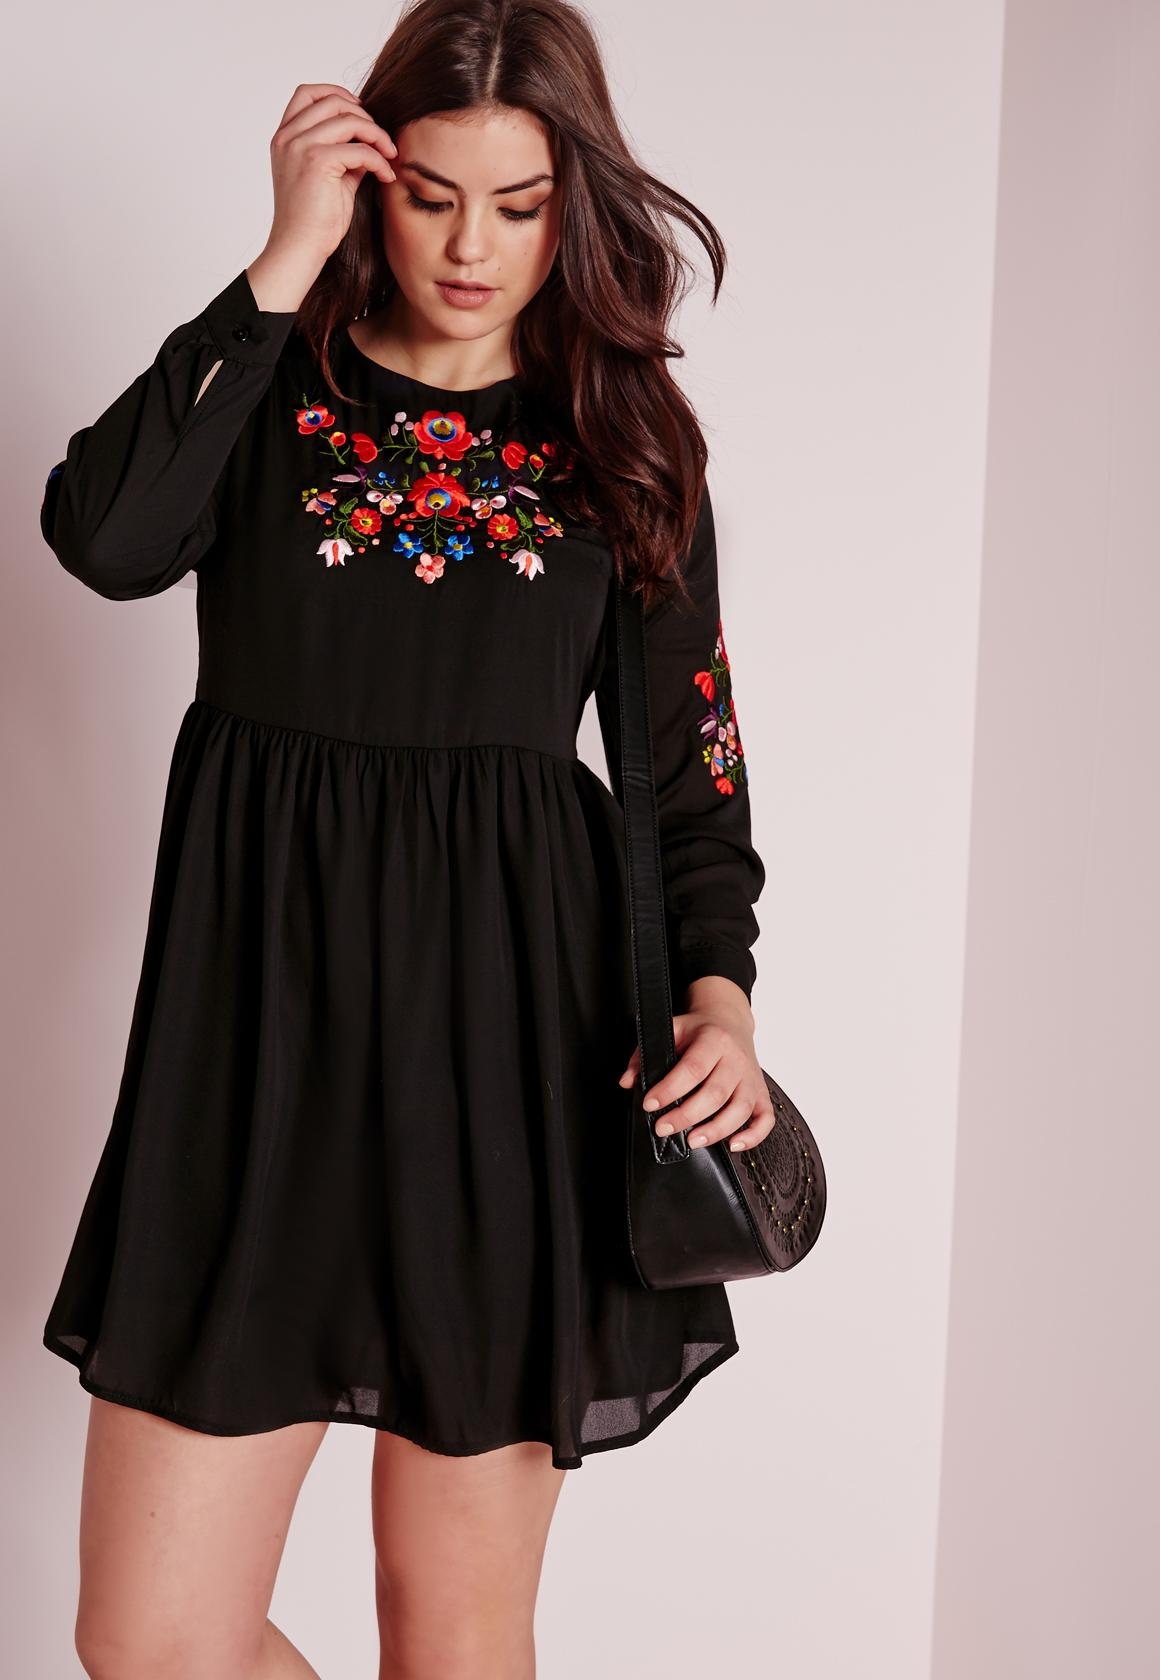 Image result for plus size embroidered dress